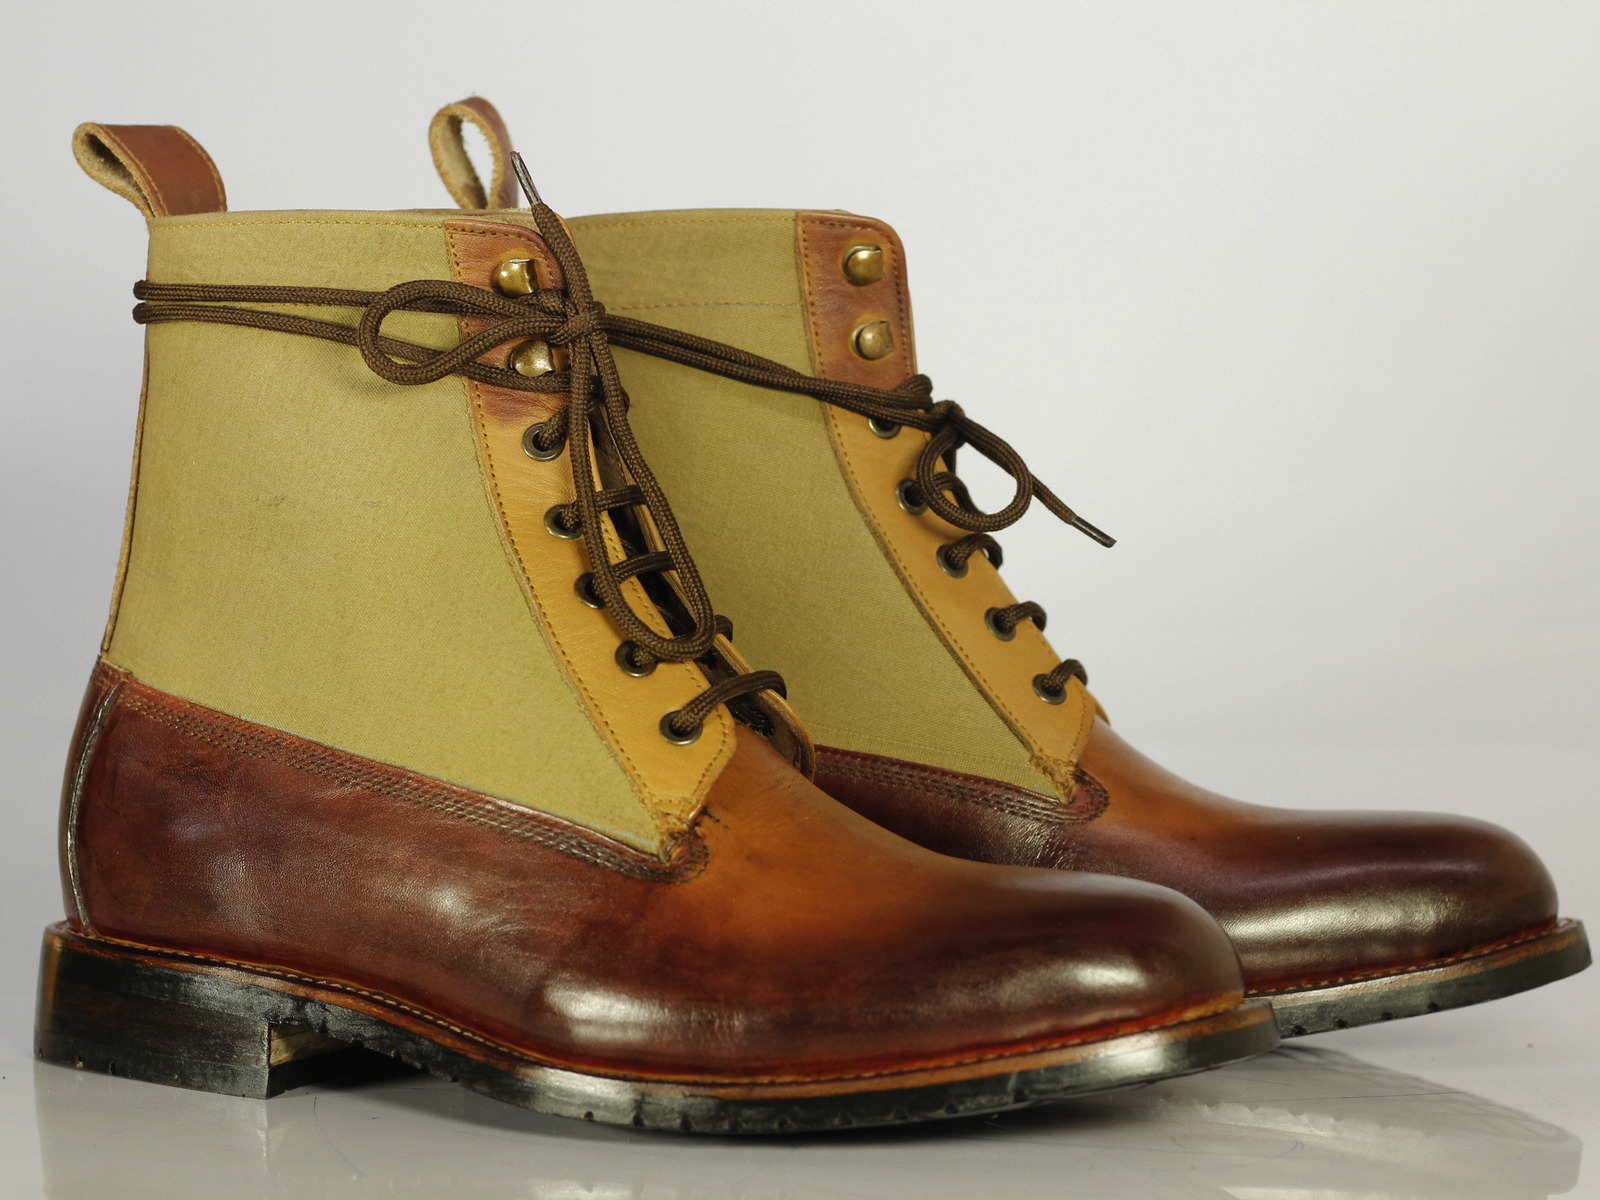 Primary image for Bespoke Brown and Tan Ankle Leather Boots For Men's